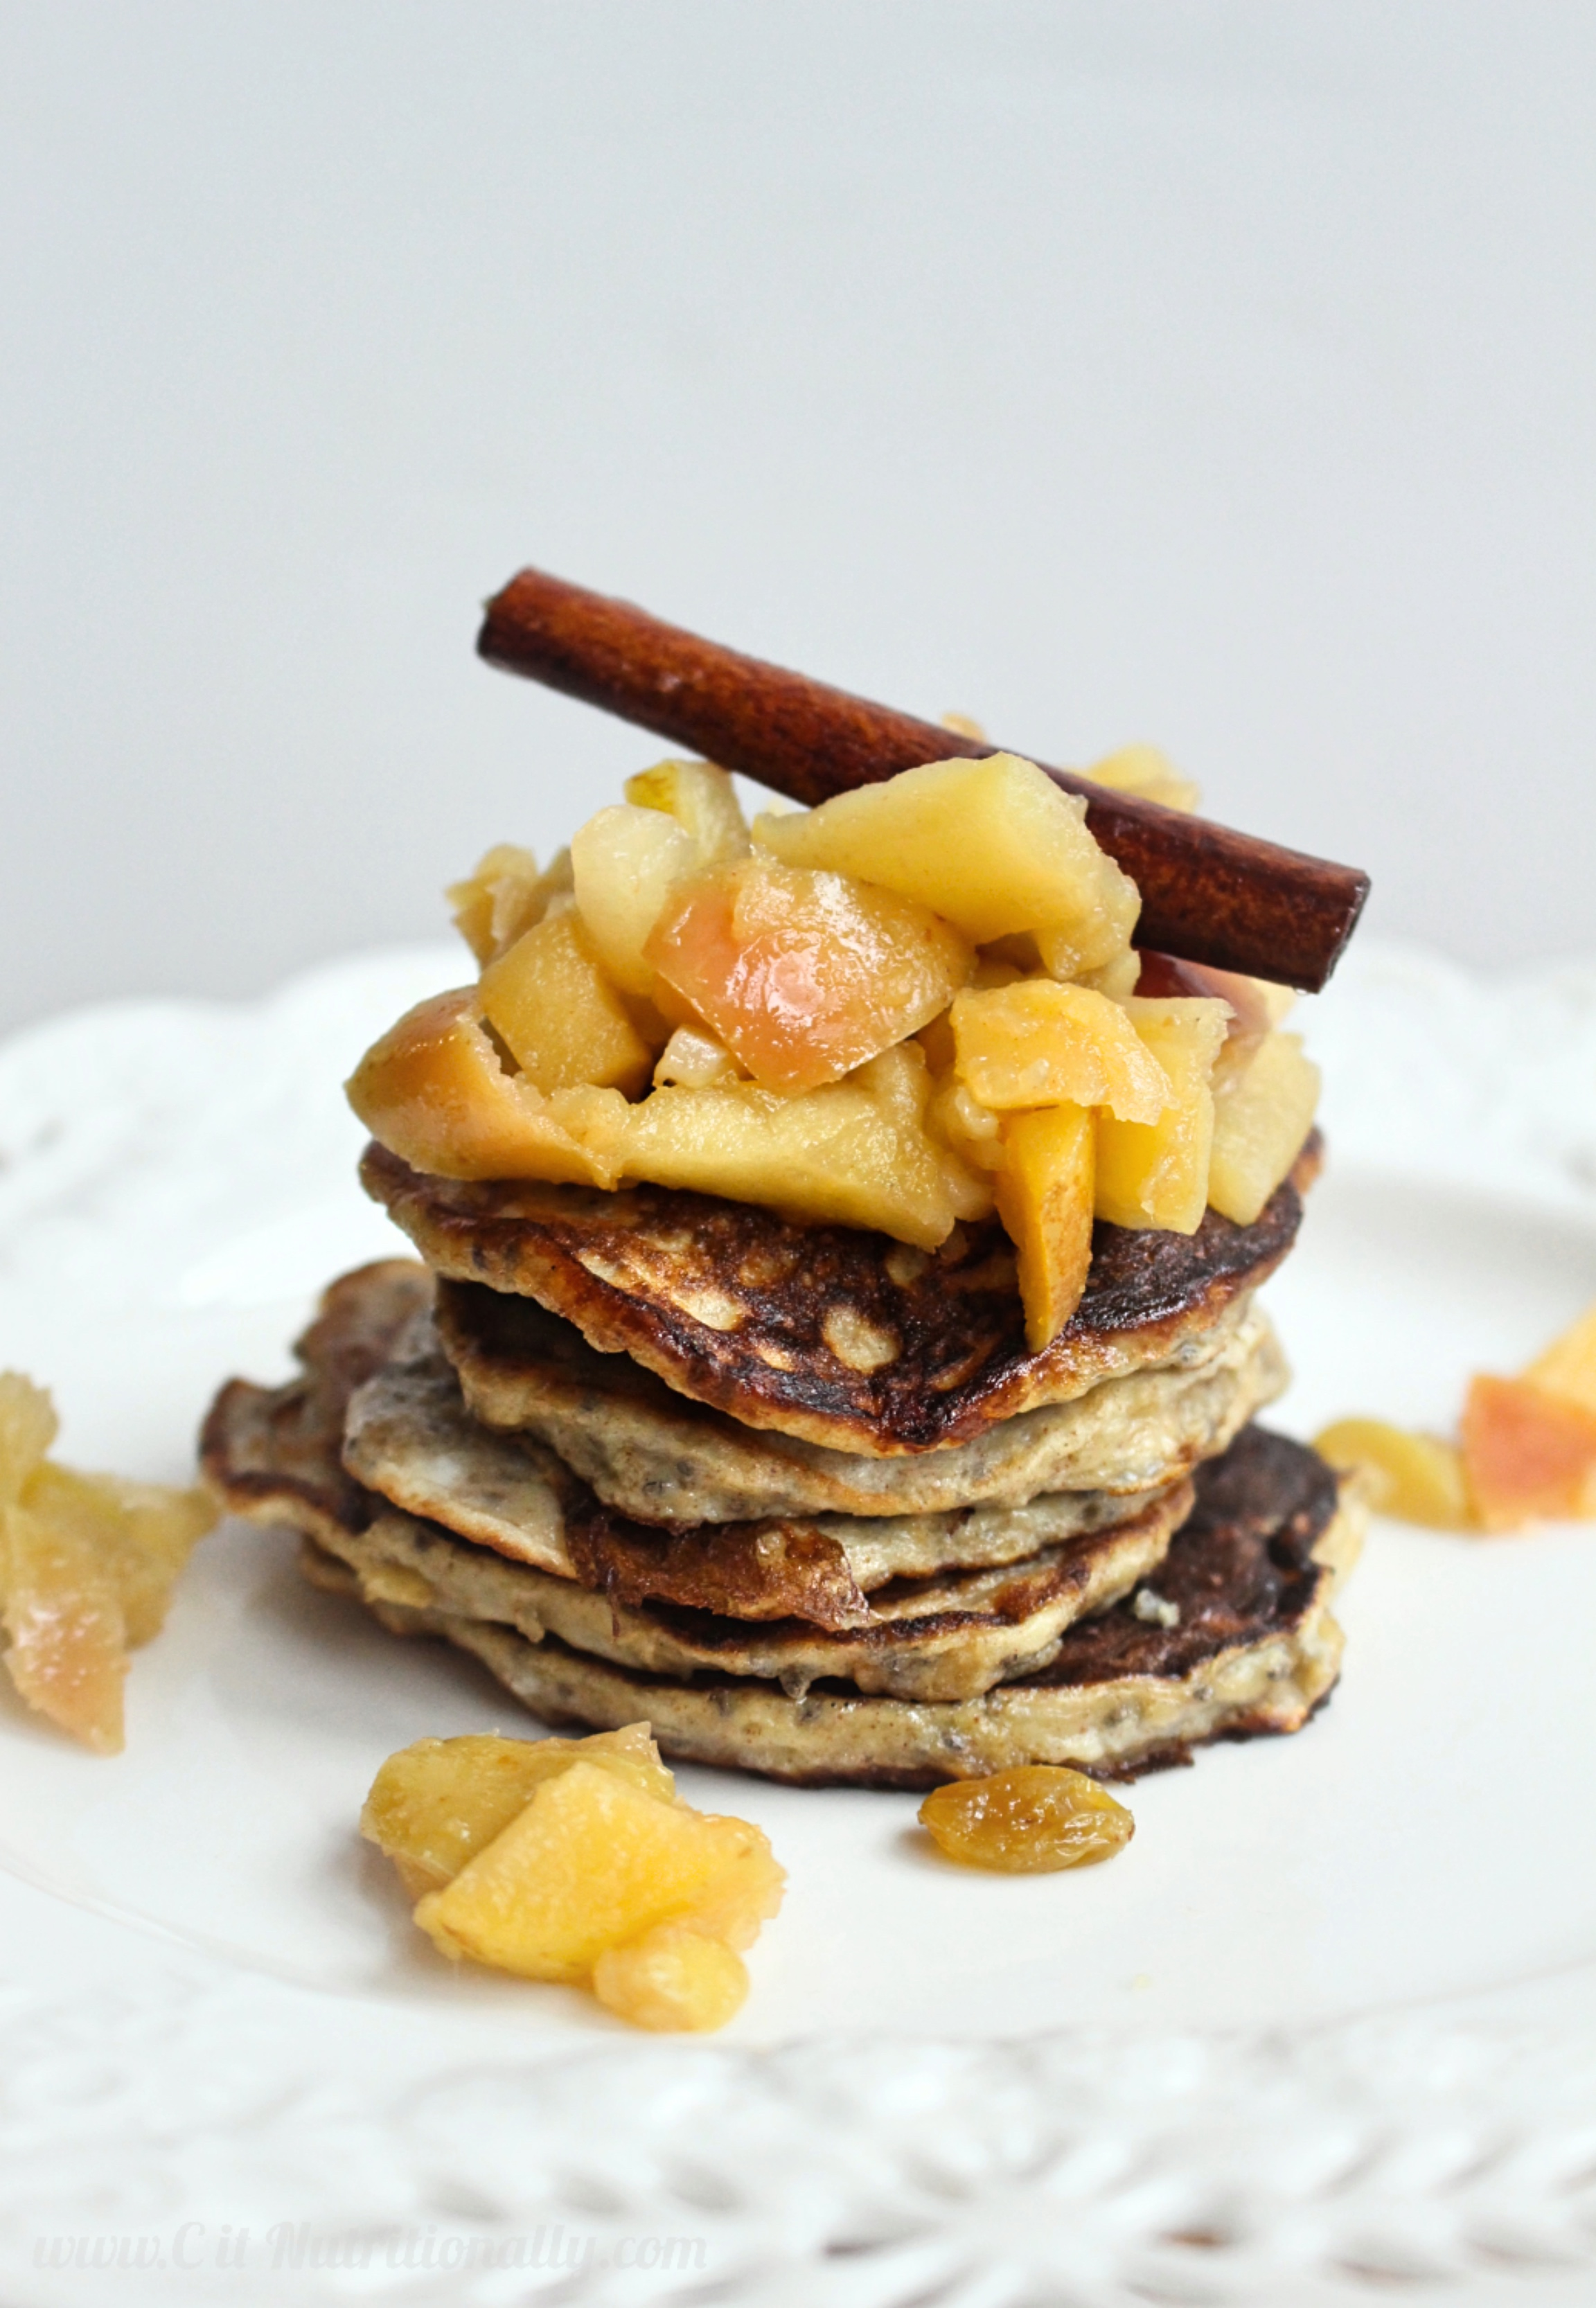 Gluten Free Banana Pancakes with Apple Cinnamon Compote | C it Nutritionally